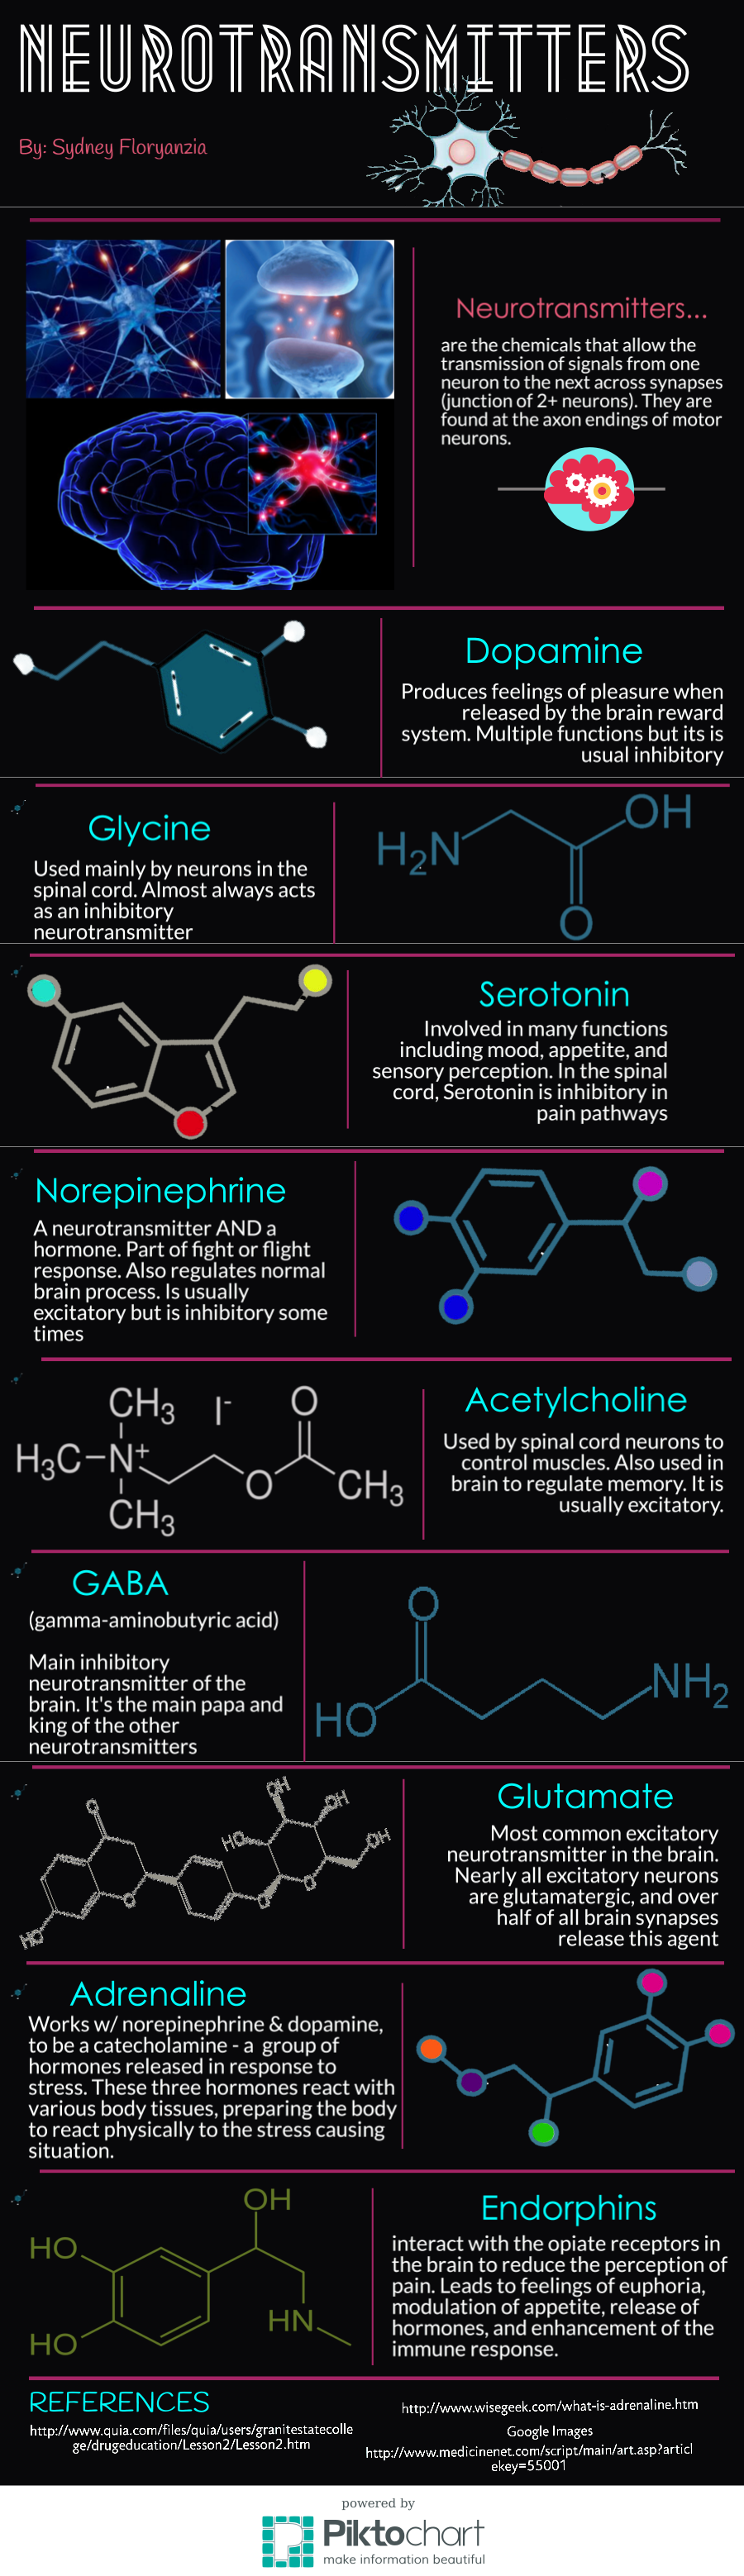 Infographic on neurotransmitters in the brain.